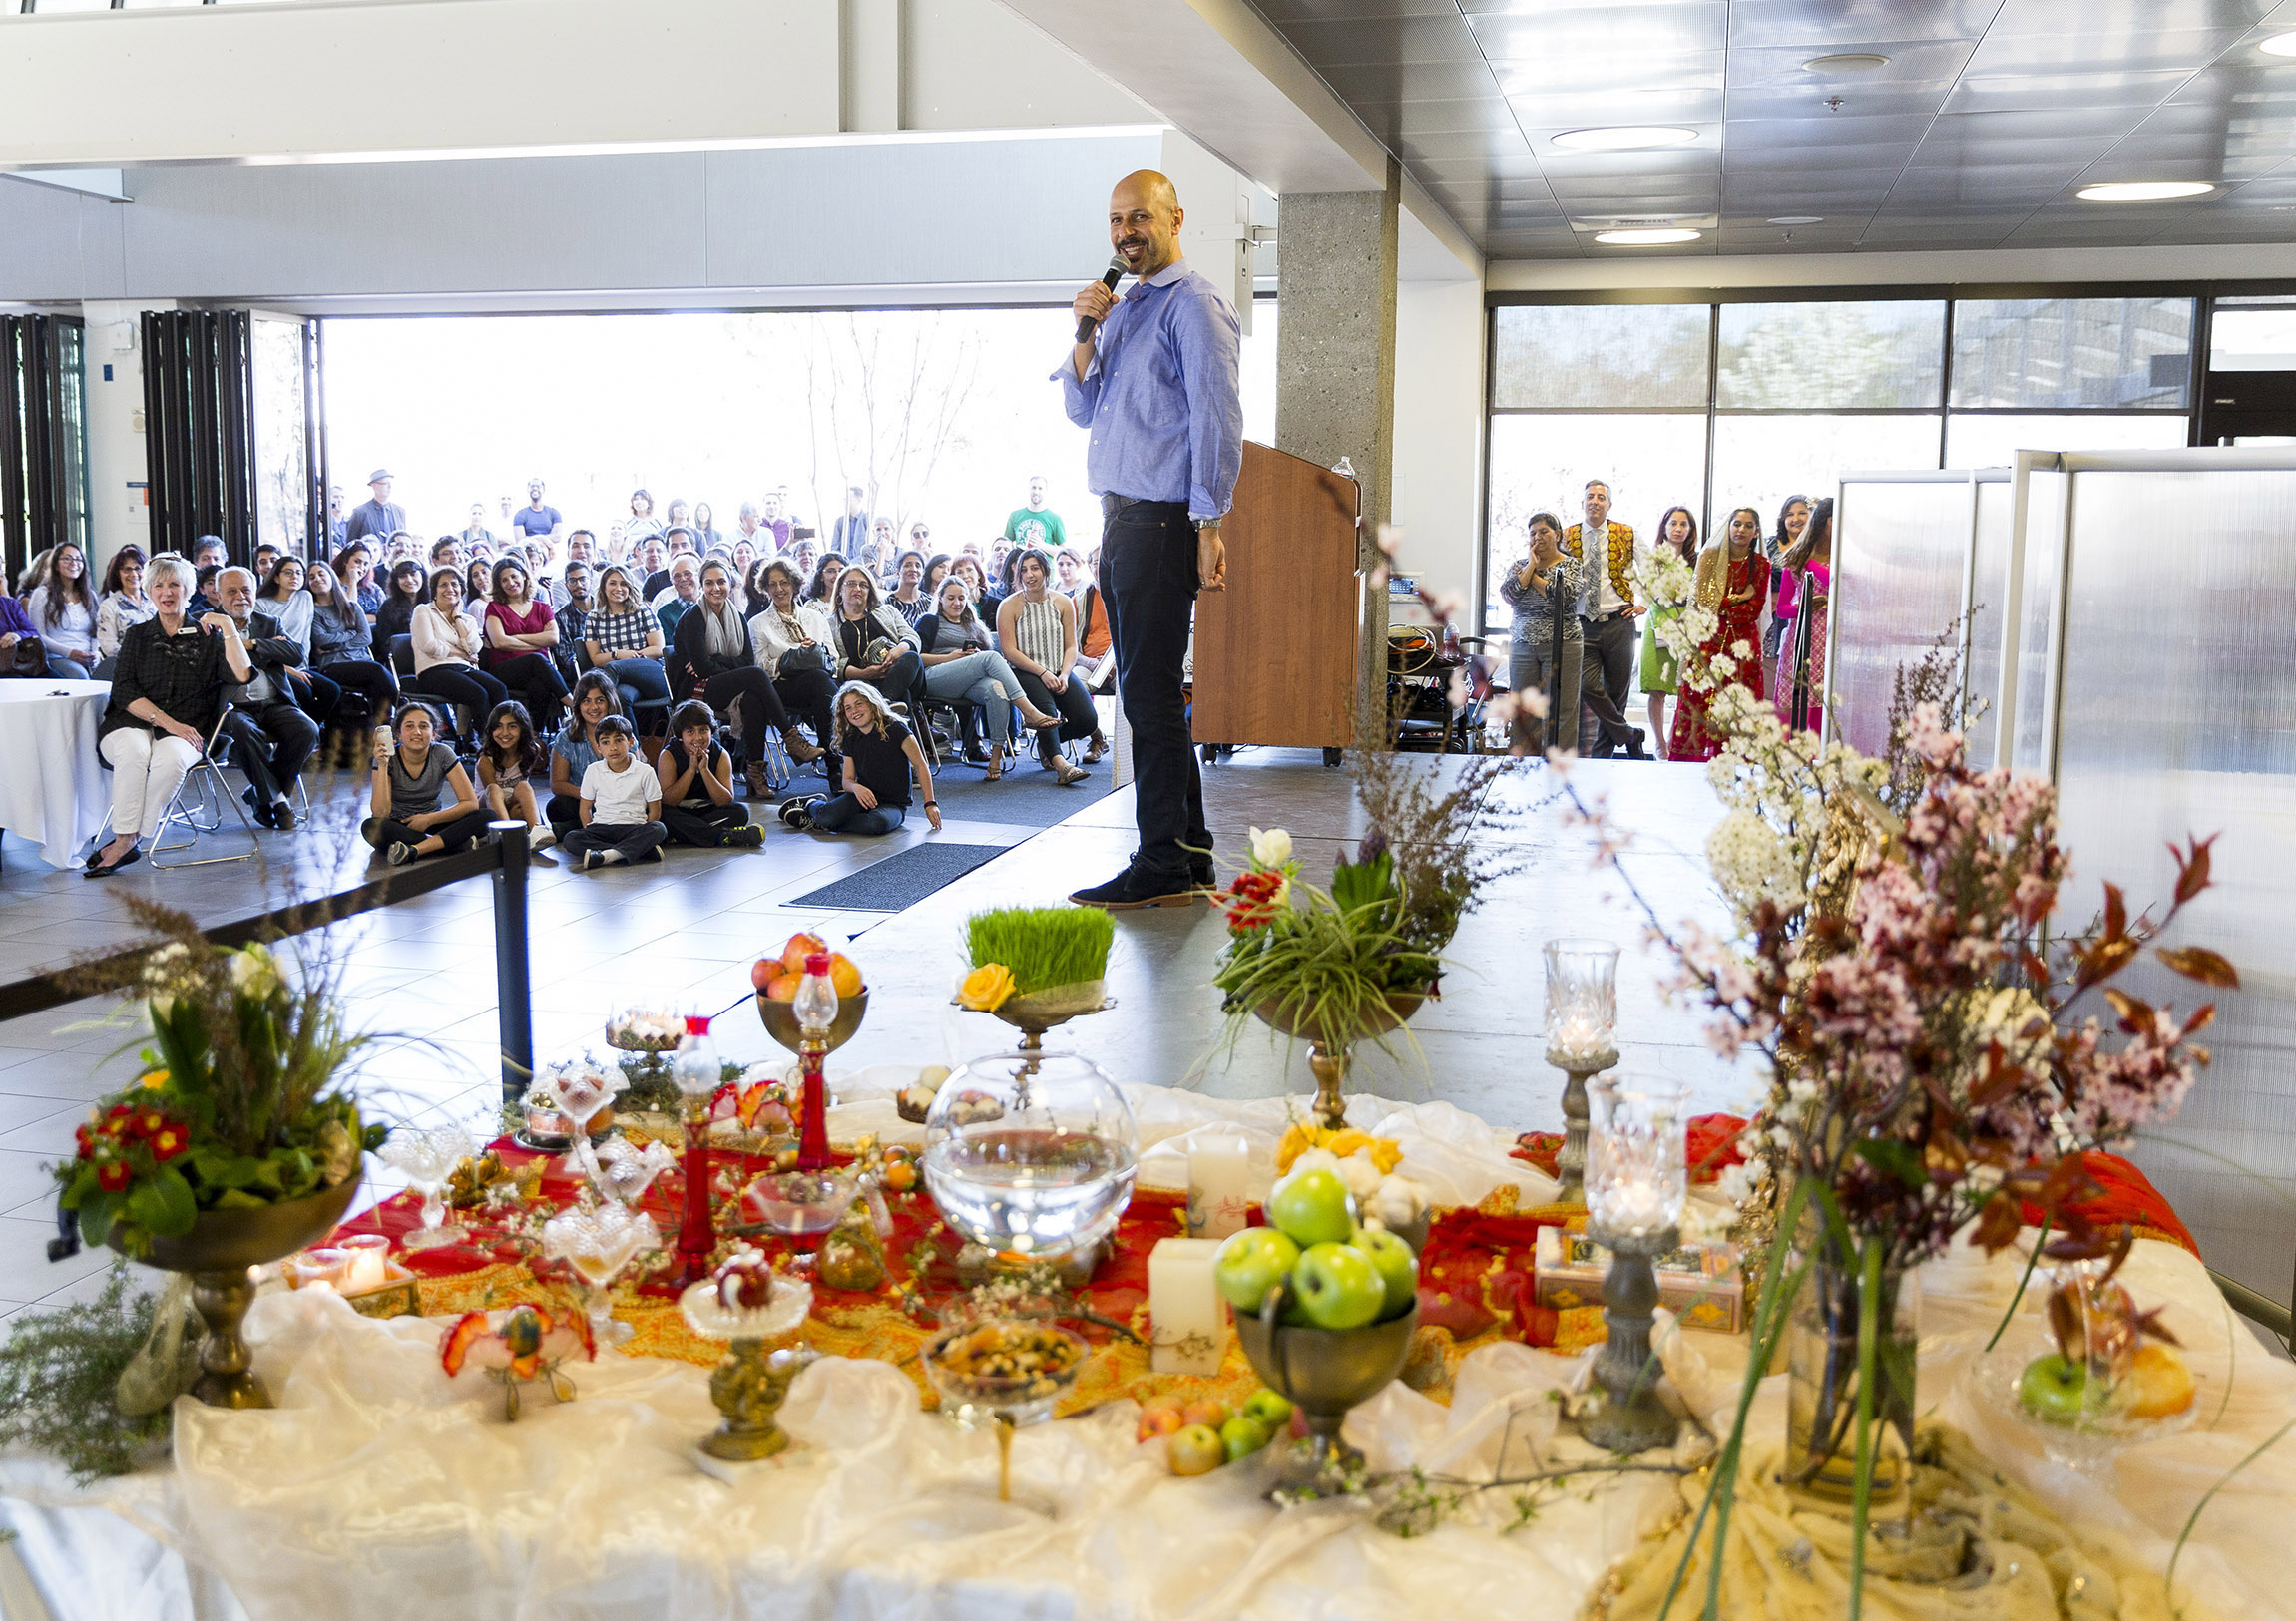 Photograph courtesy of Nick Gonzales/West Valley College  Comedian and actor Maz Jobrani performs at West Valley College's Persian New Year celebration on March 13.